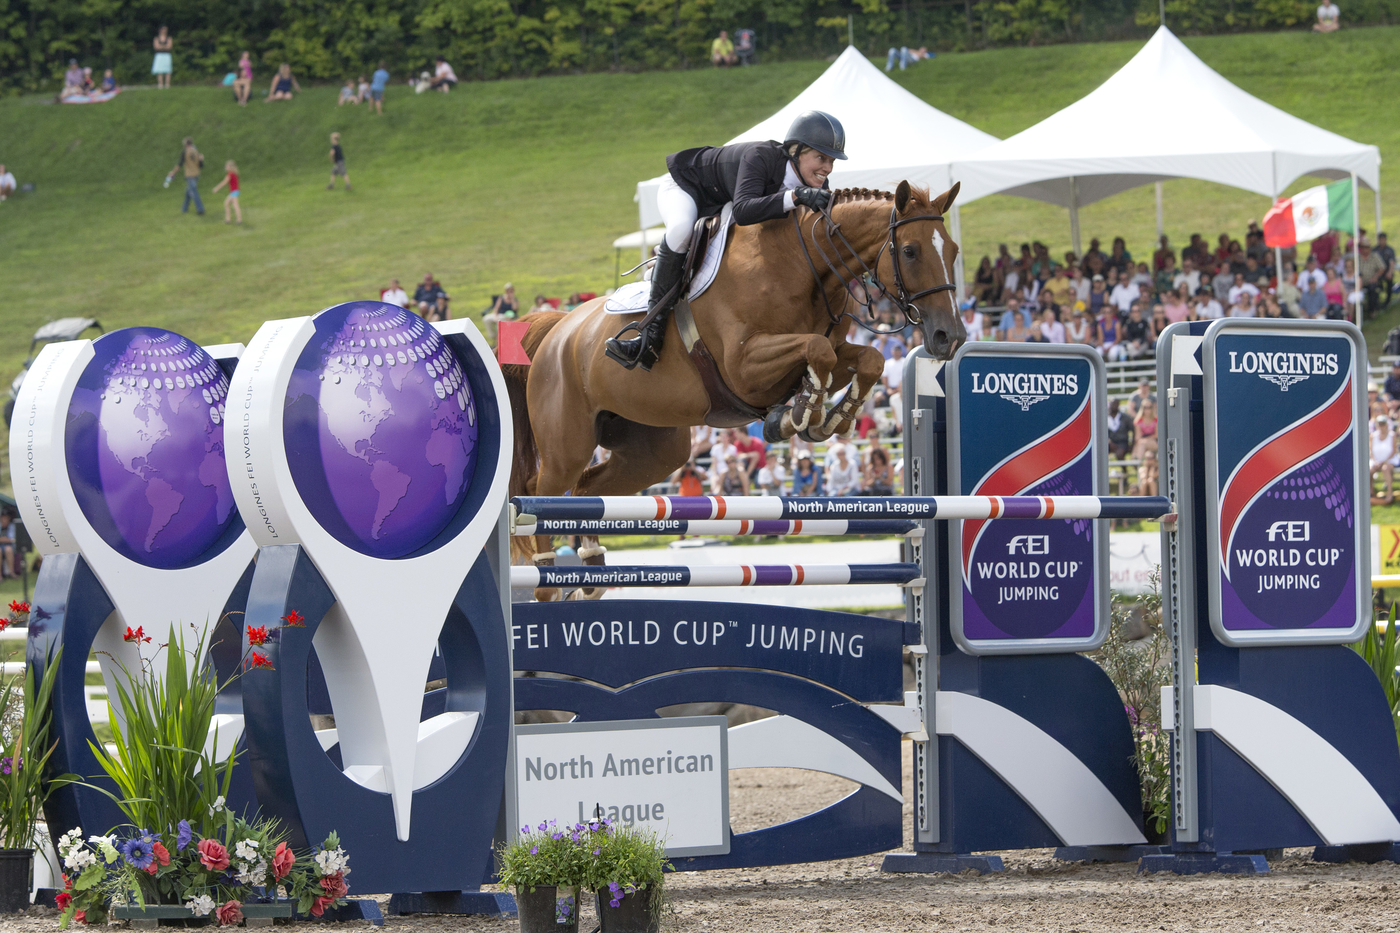 Longines Show Jumping Event: Longines FEI World Cup Jumping North American League at Bromont, Canada  6